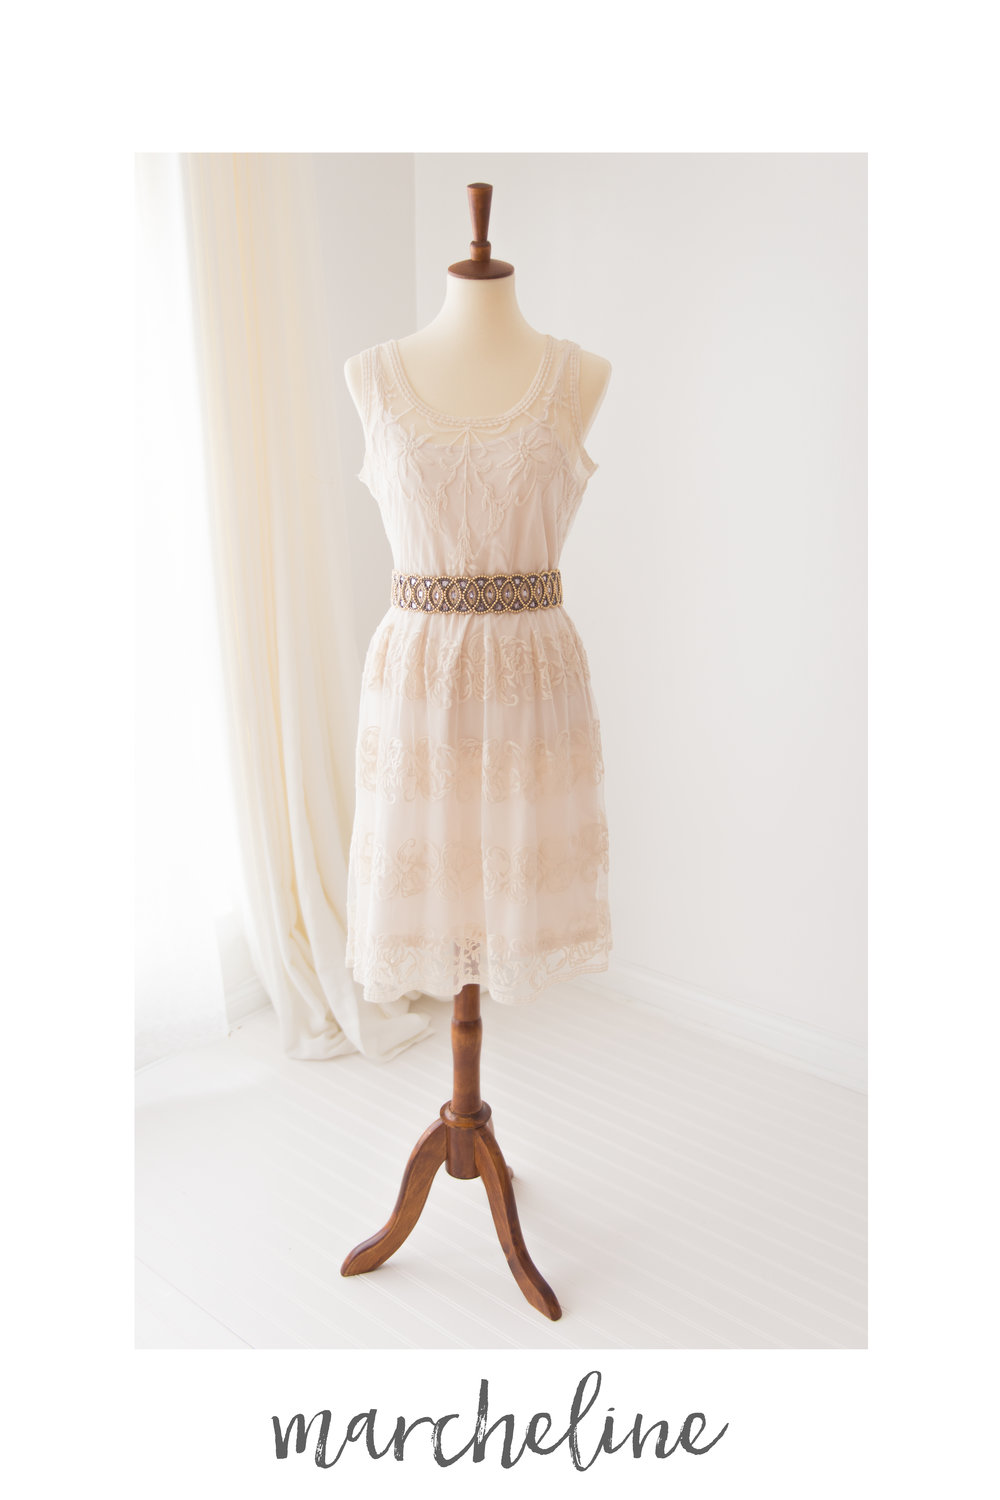 marcheline dress.jpg